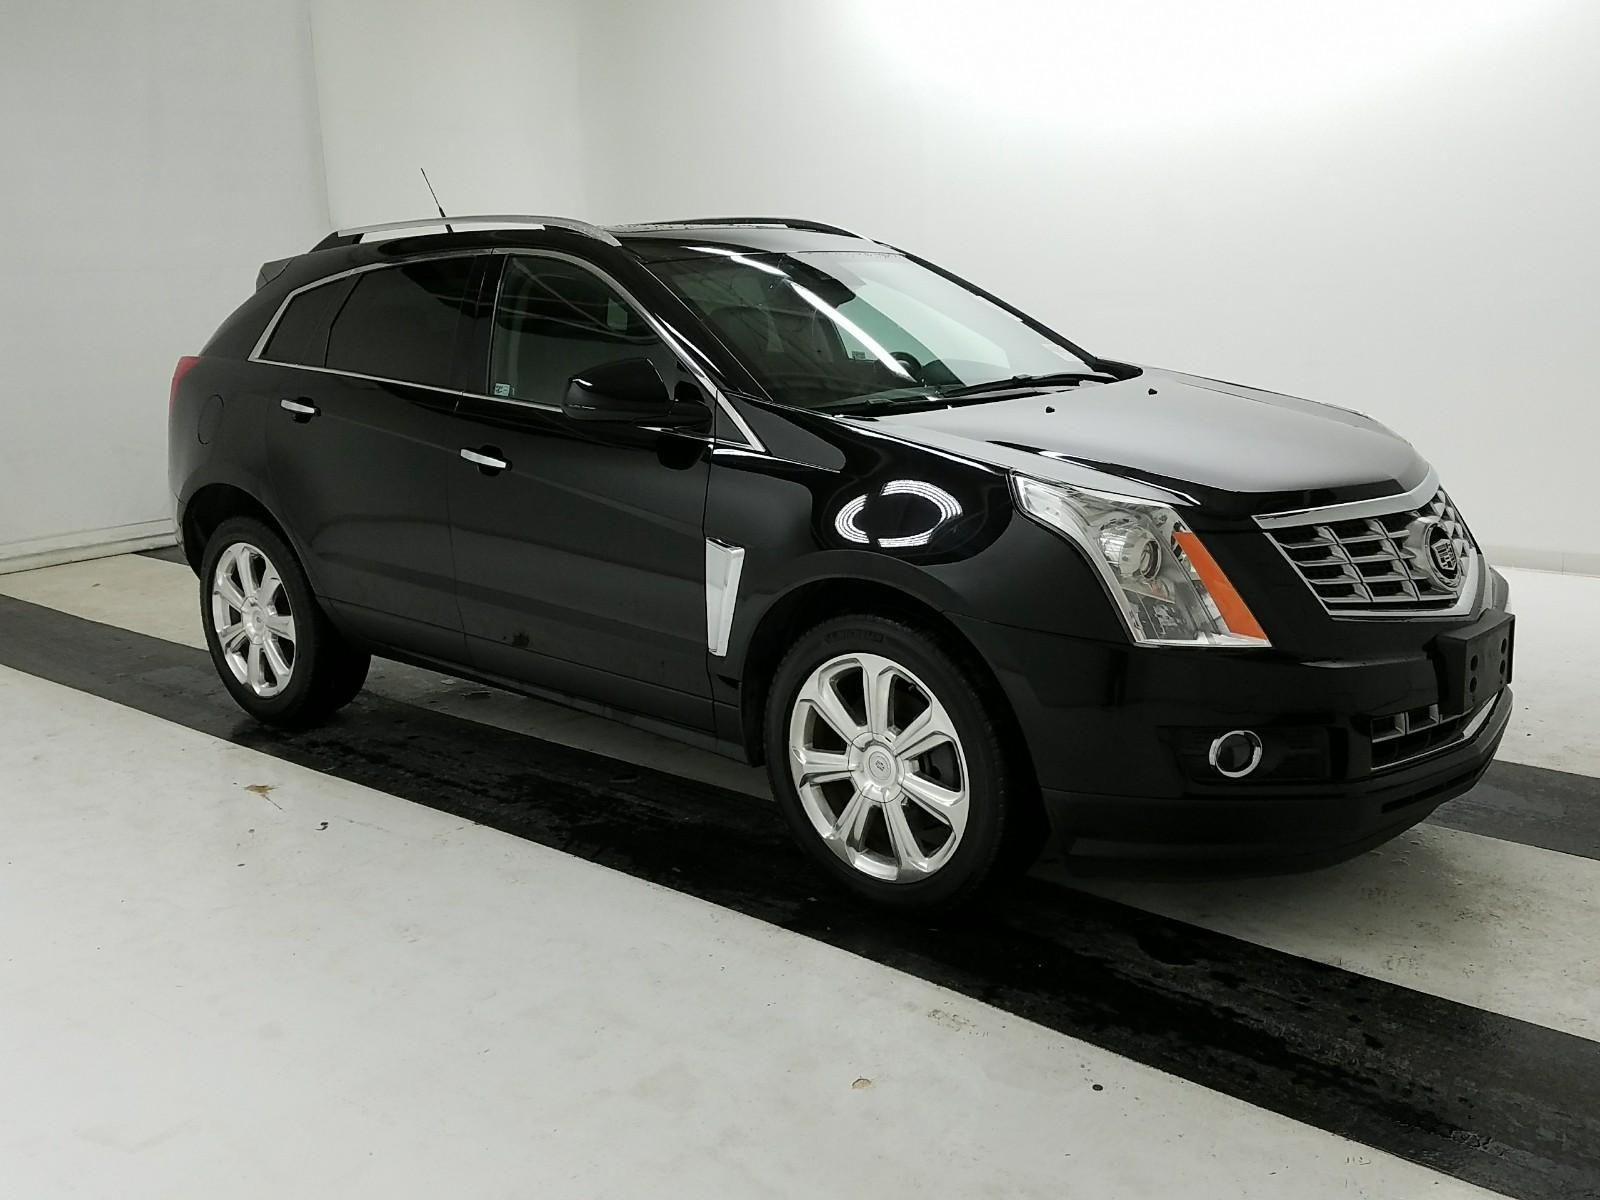 collection c srx cadillac luxury photos view l htm